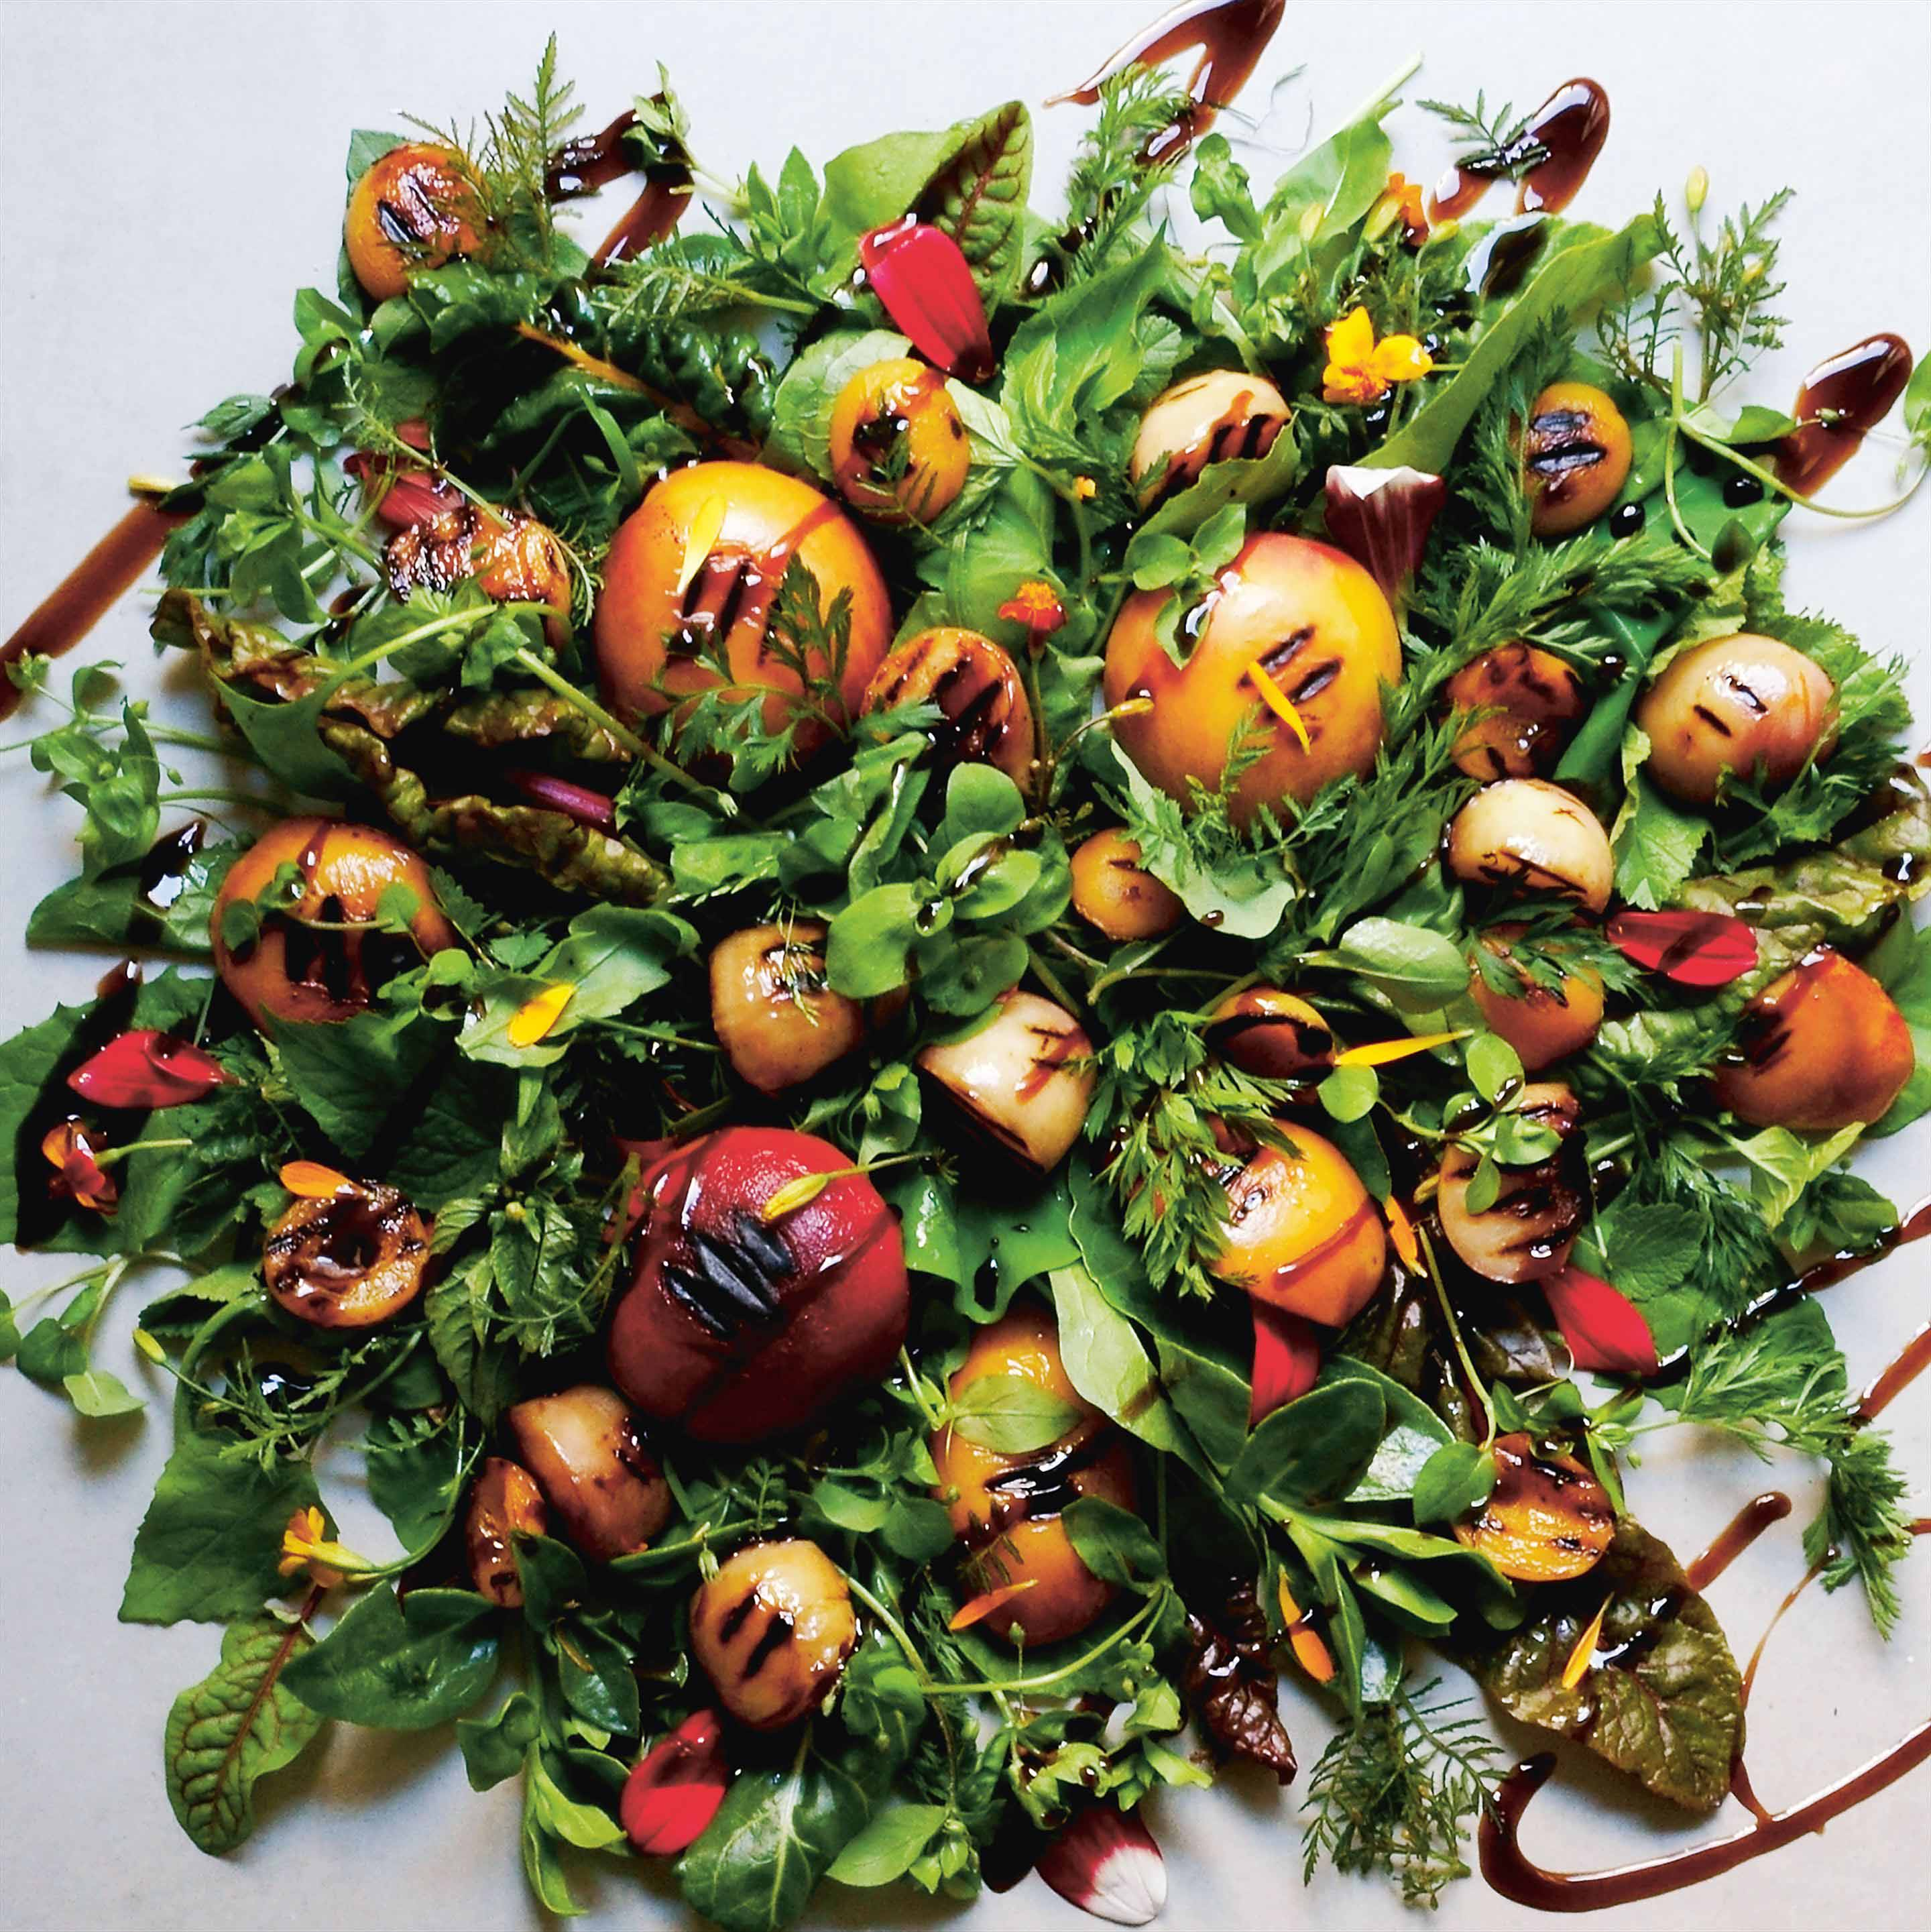 Grilled stone fruit and wild herb salad